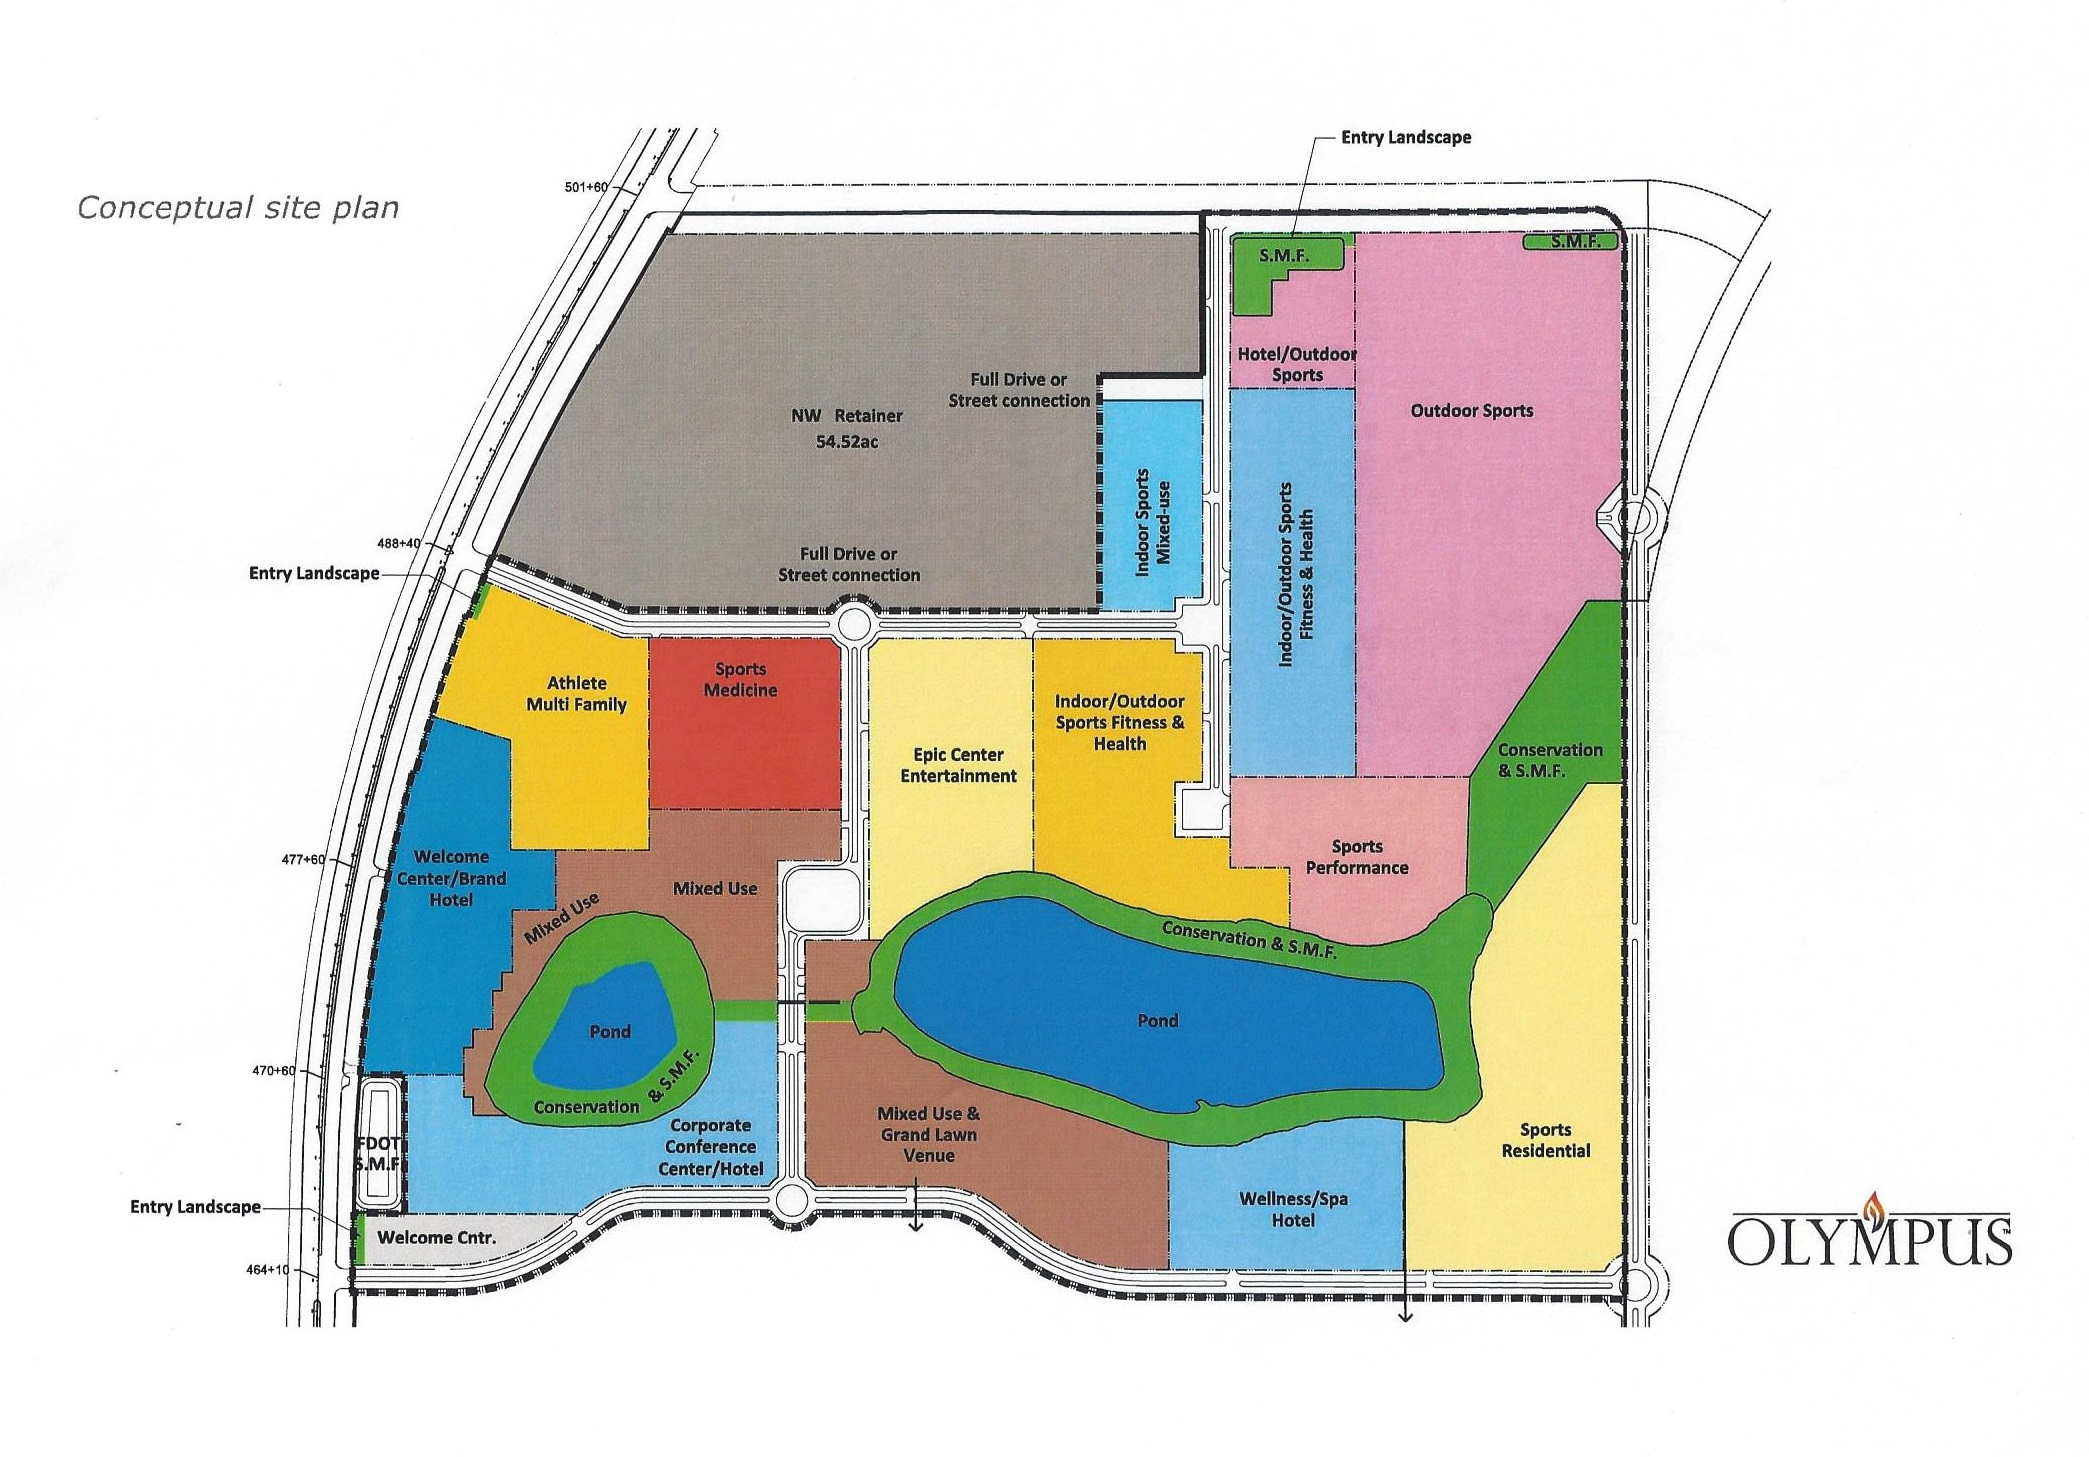 Proposed site map of the Olympus project.